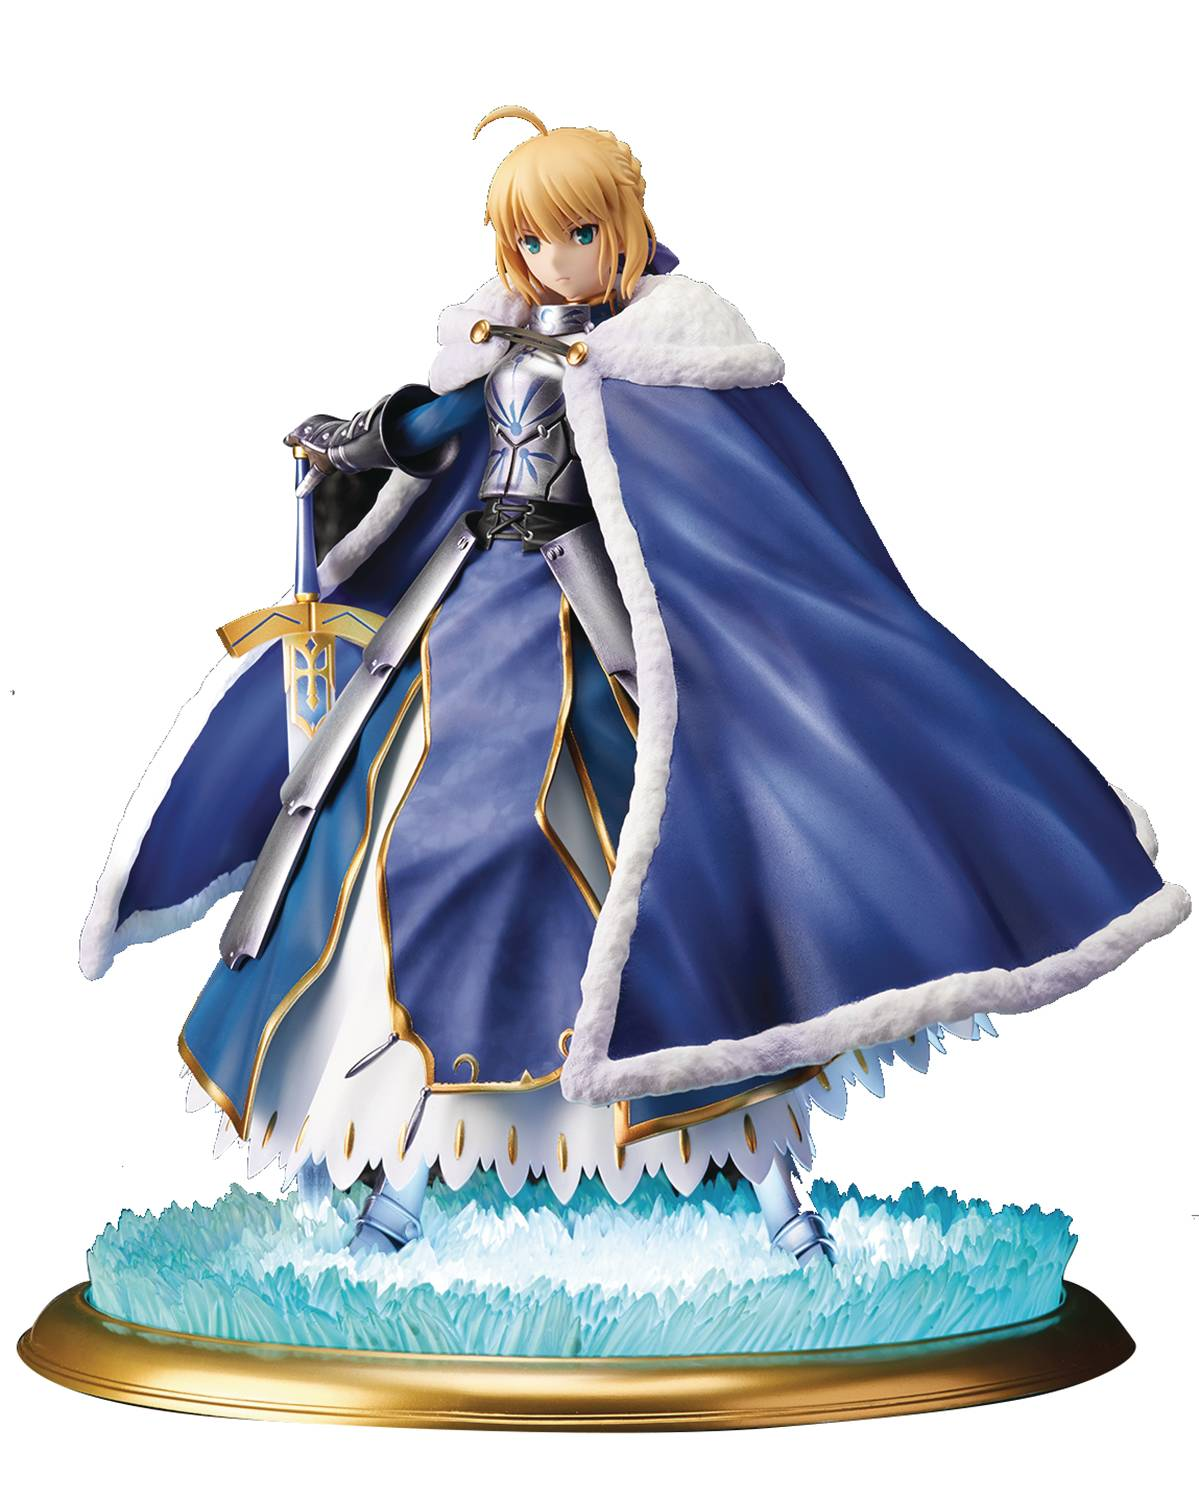 FATE GRAND ORDER SABER ALTRIA PENDRAGON DLX ED 1/7 PVC FIG (